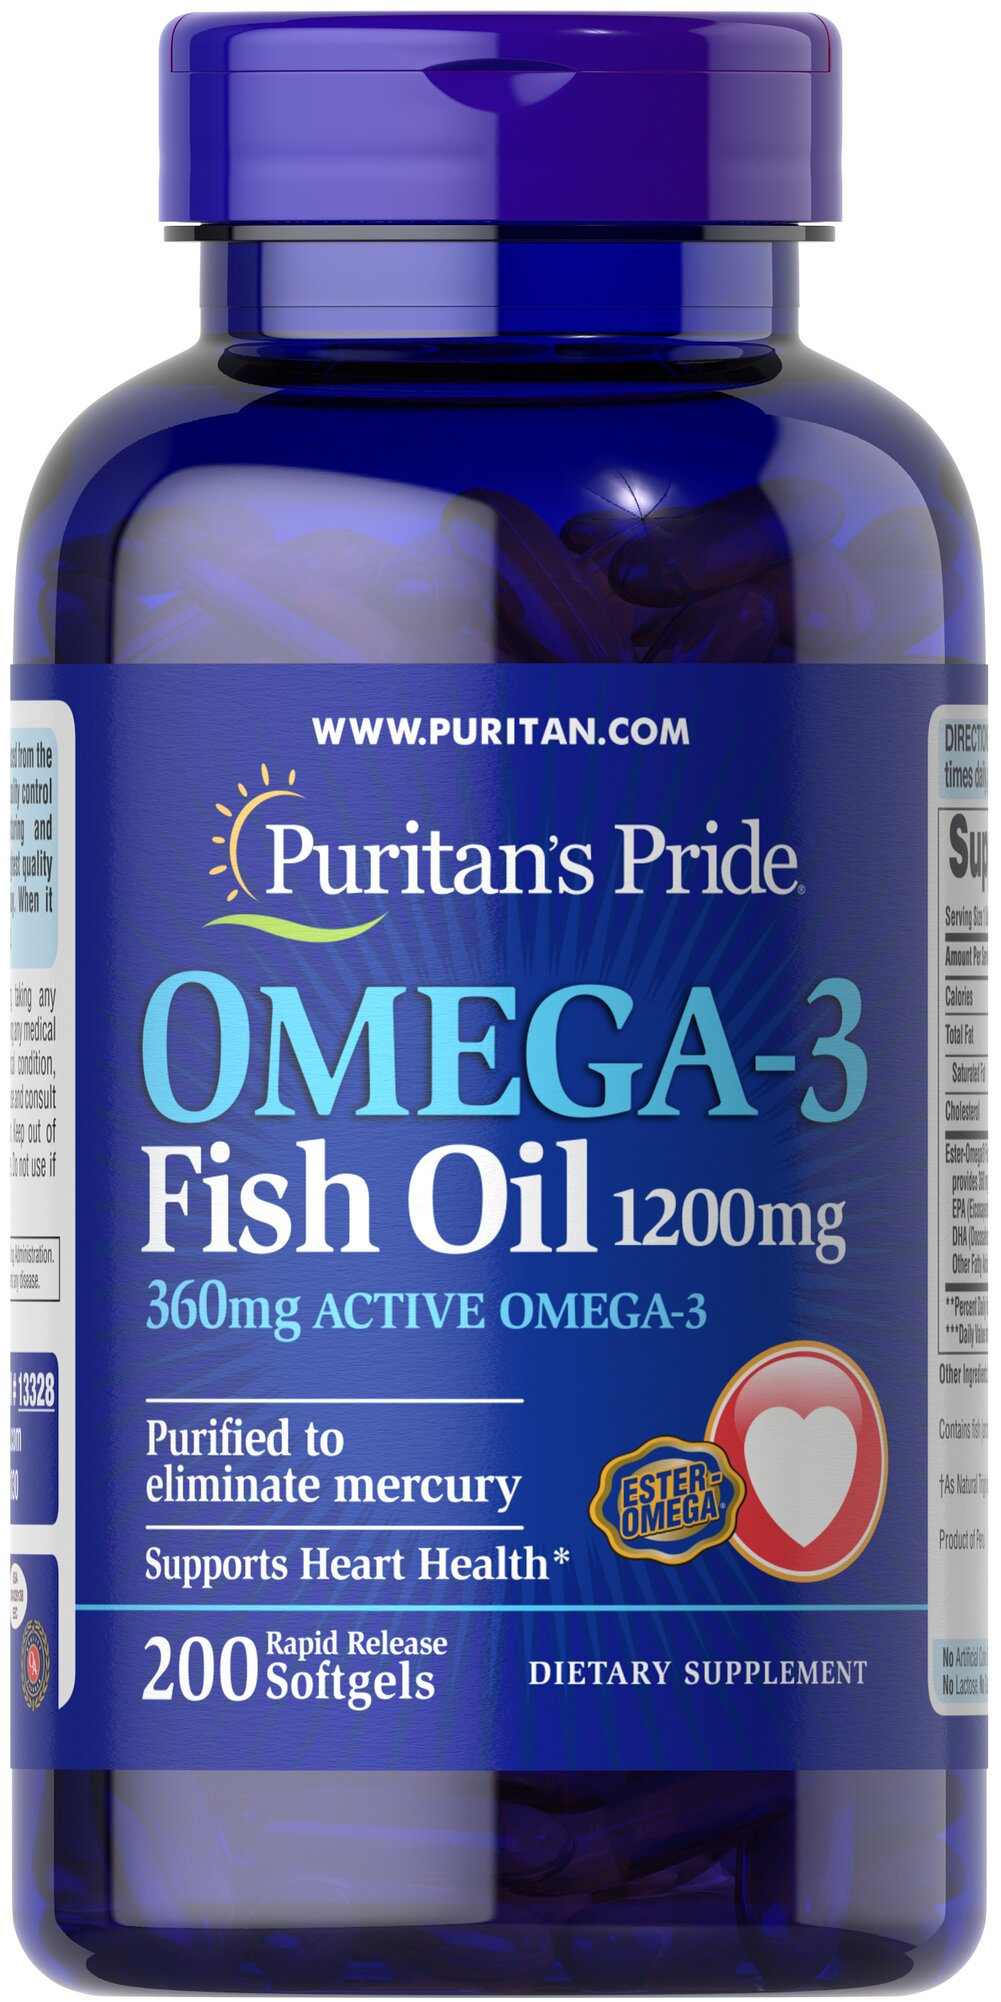 Omega-3 Fish Oil 1200 mg (360 mg Active Omega-3) <p>This Ester-Omega® Fish Oil provides 360mg of total omega-3 fatty acids, comprising of EPA, DHA and other fatty acids. EPA and DHA fatty acids support heart health.** Purified to eliminate mercury. Rapid release softgels.</p> 200 Softgels 1200 mg $21.59